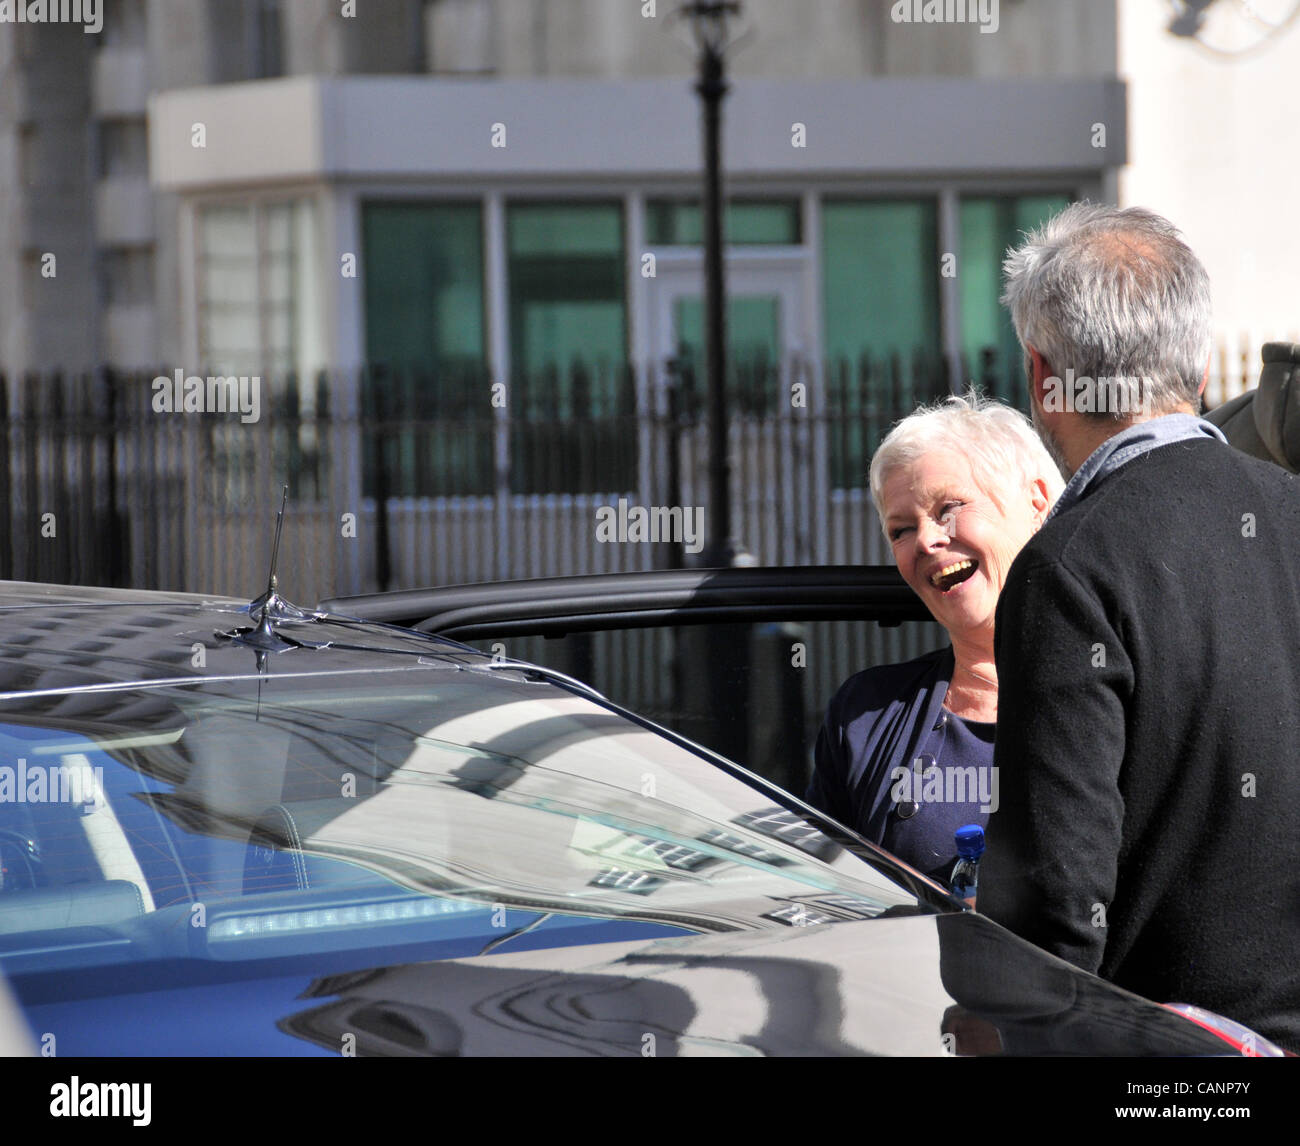 Dame Judi Dench after finishing filming a scene for Skyfall the new 007 film. Whitehall, London 1/4/12. Filming Stock Photo